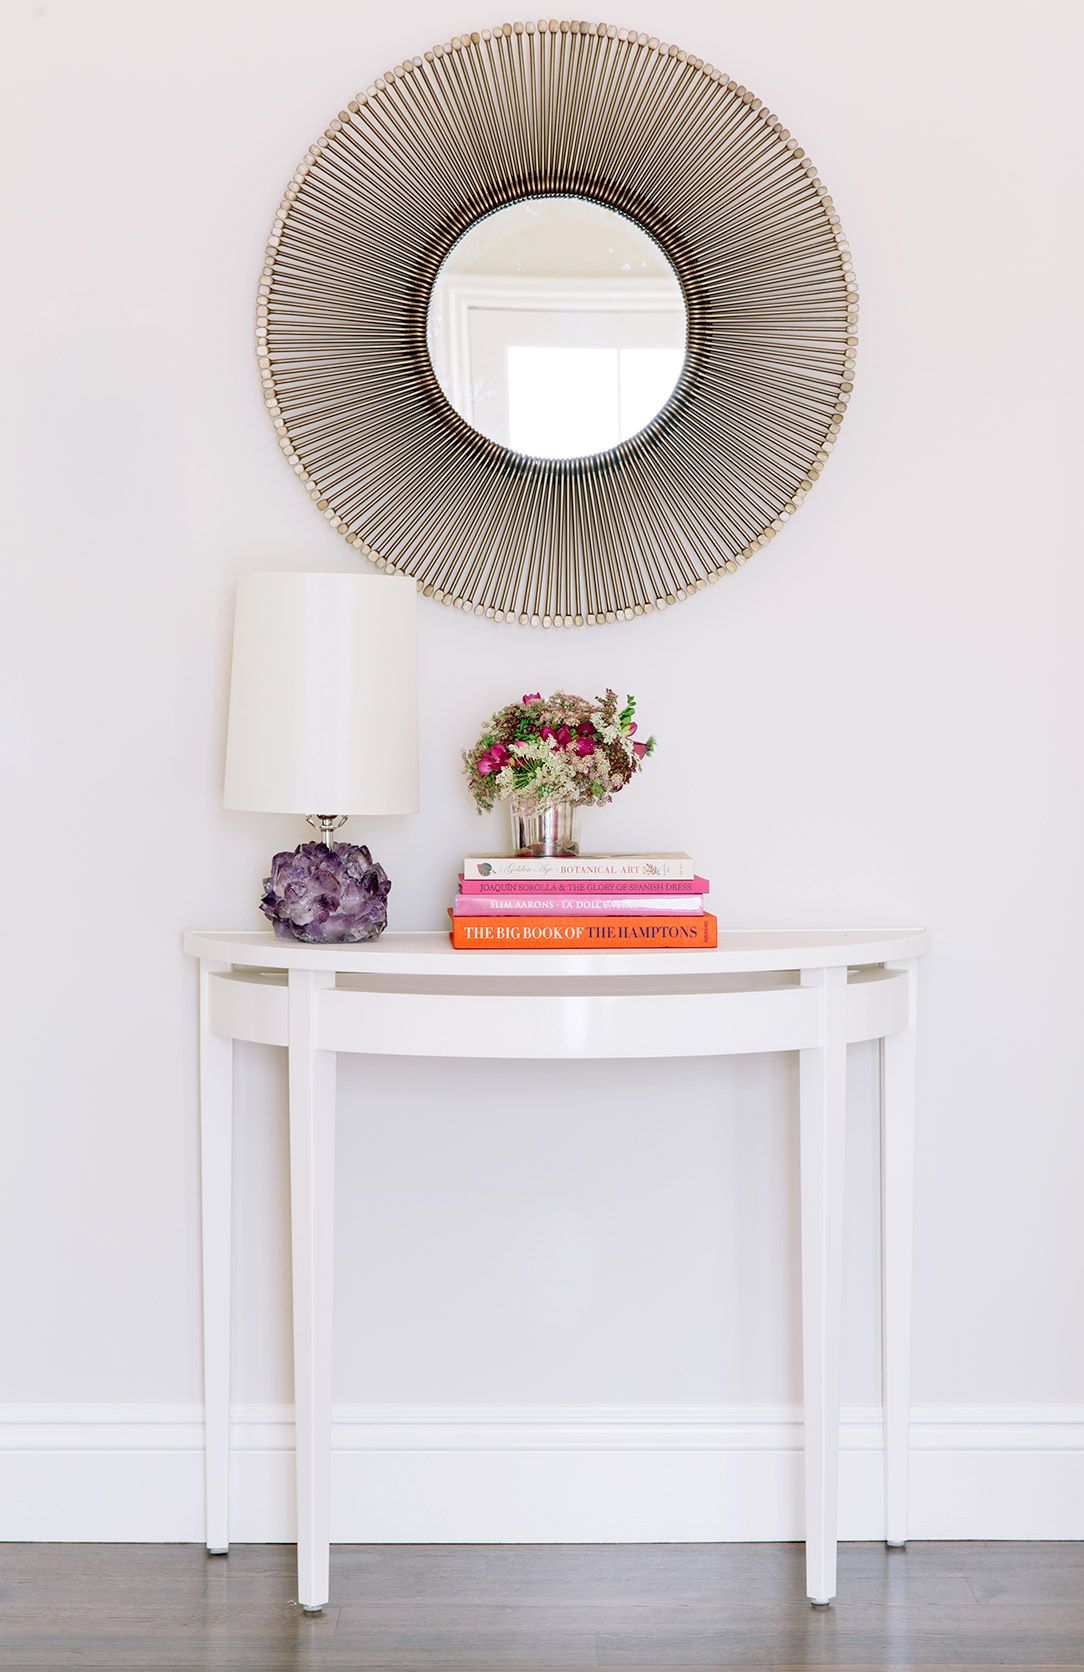 Console table styled with flowers, books, and a lamp and mirror hanging above